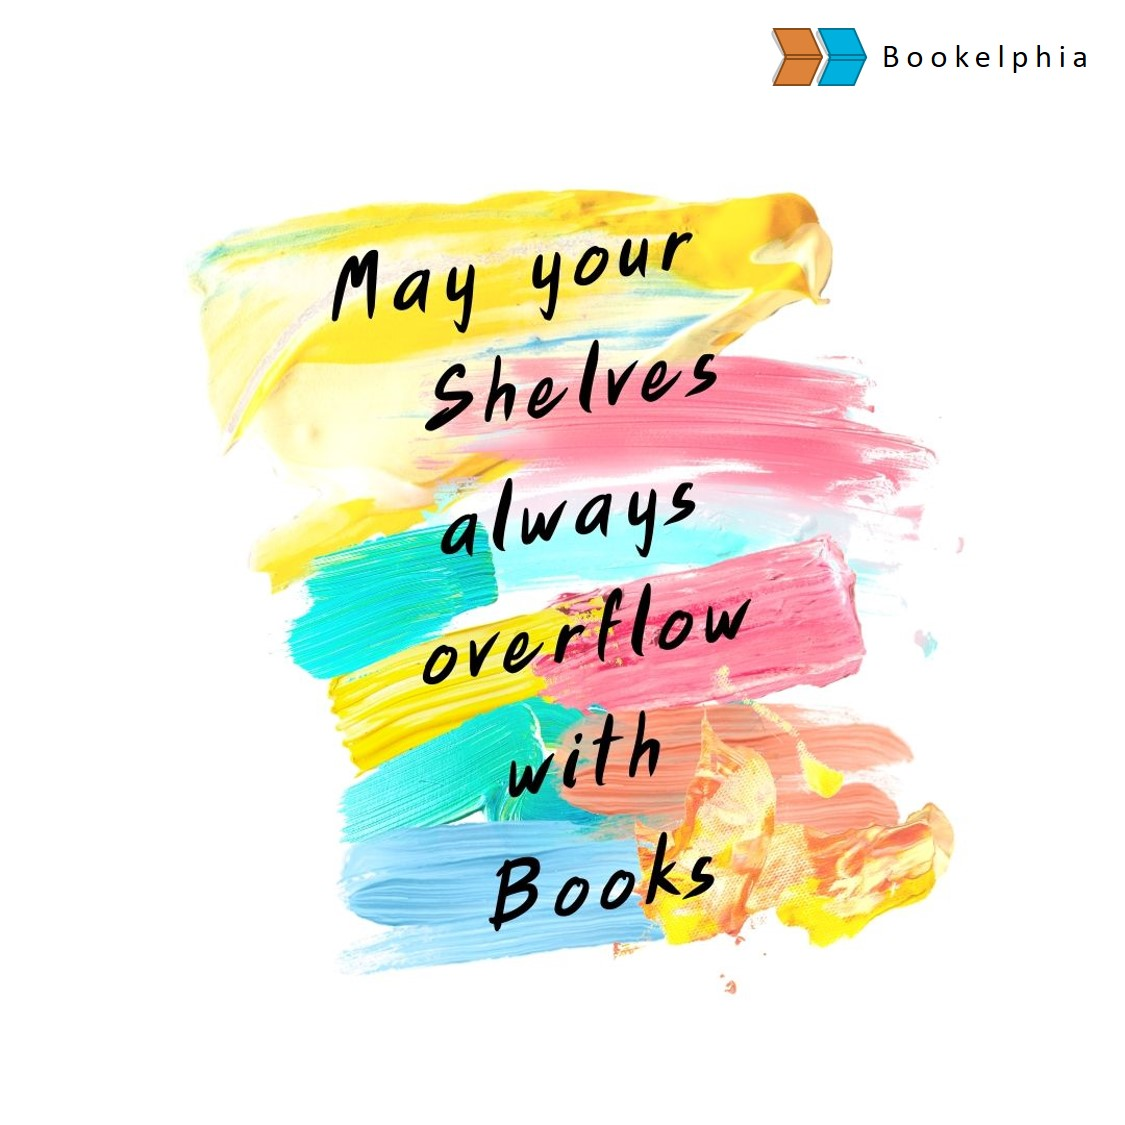 May Your Shelves always Overflow with Books... #bookquote #bookworld #bestoftheday #booksofinstagram #bookish #bookworms #bookaddict #bookobsessed #bookcommunity #booklove #bookgram #bookgeek #bookaholic